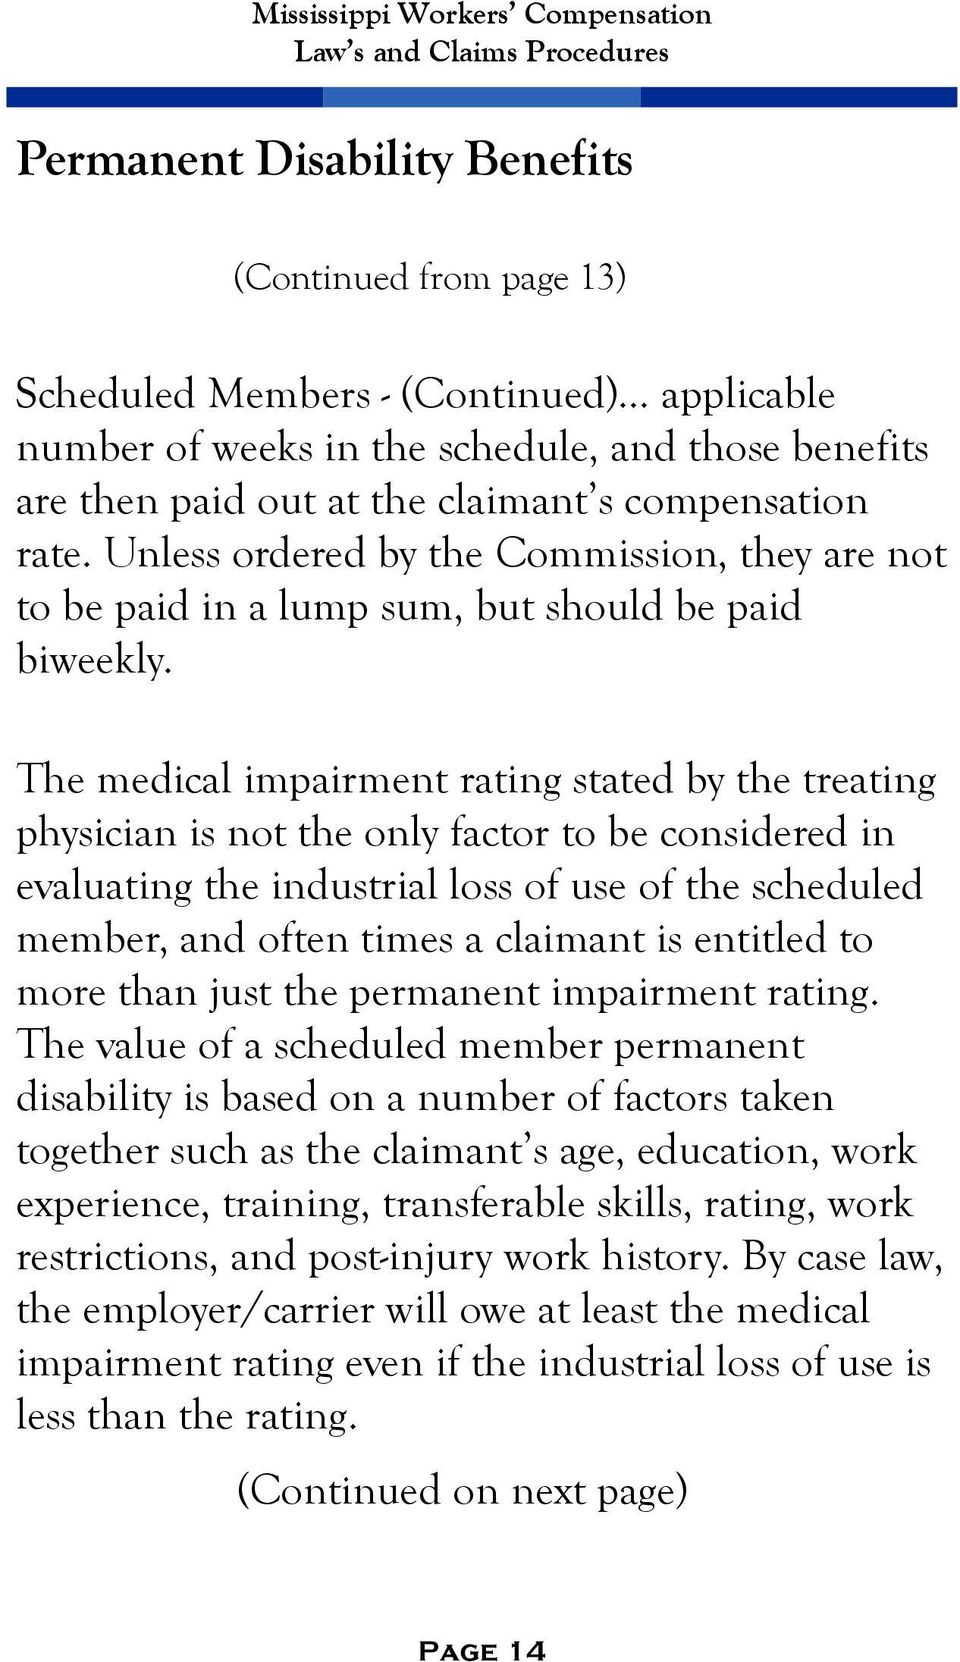 The medical impairment rating stated by the treating physician is not the only factor to be considered in evaluating the industrial loss of use of the scheduled member, and often times a claimant is